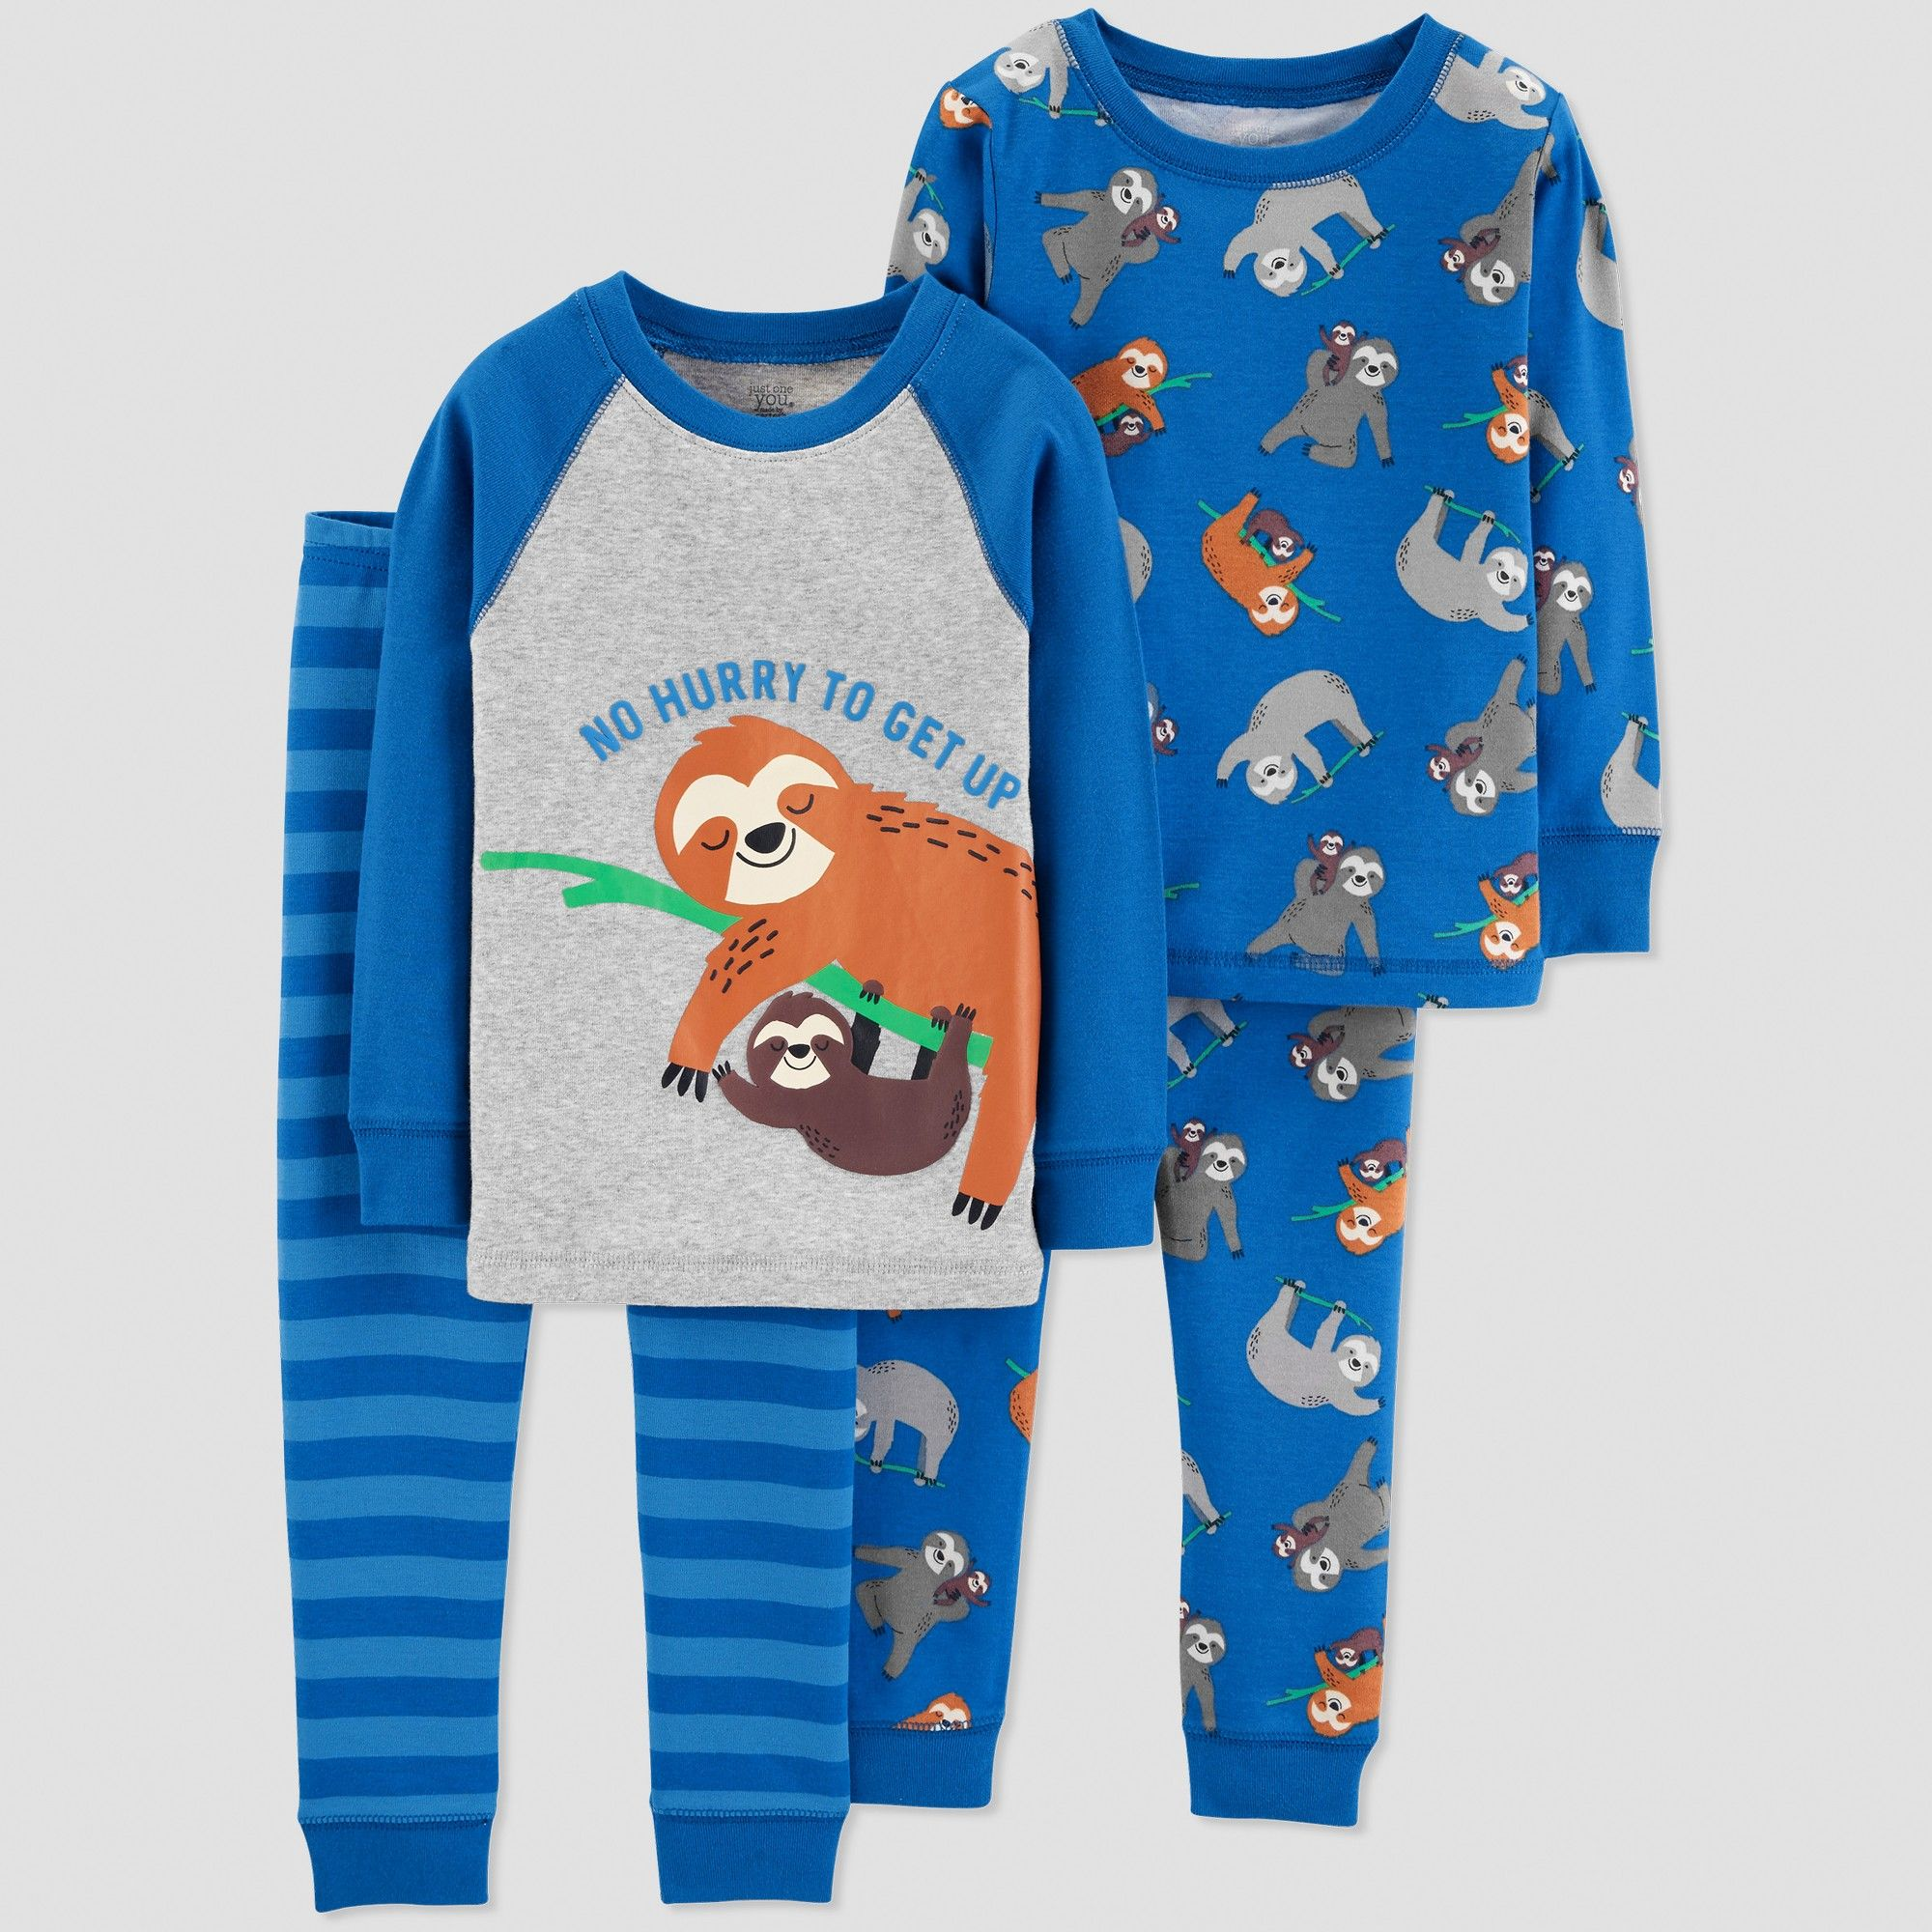 c4752eaaf Toddler Boys  4pc Sloth Pajama Set - Just One You made by carter s ...